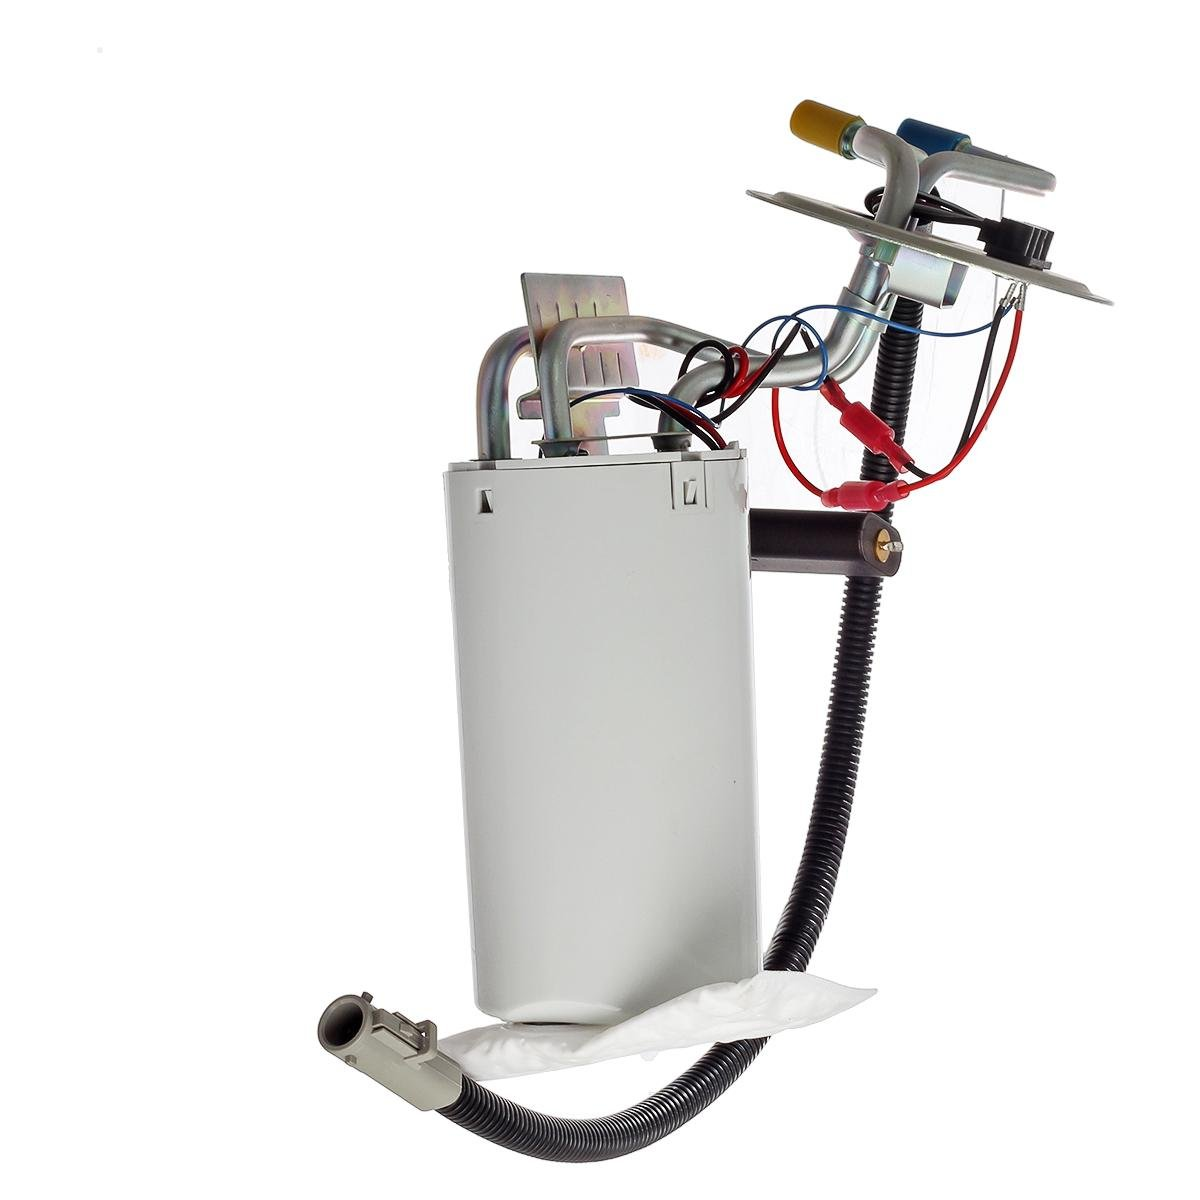 POWERCO Electric Gas Fuel Pump Module Assembly Replacement For Ford 1992-1998 F-150 F-250 F-350 F-450 F Super Duty 1998 1997 1996 1995 1994 1993 1992 With Sending Unit E2059M SP2005H Fit For:17 Gal